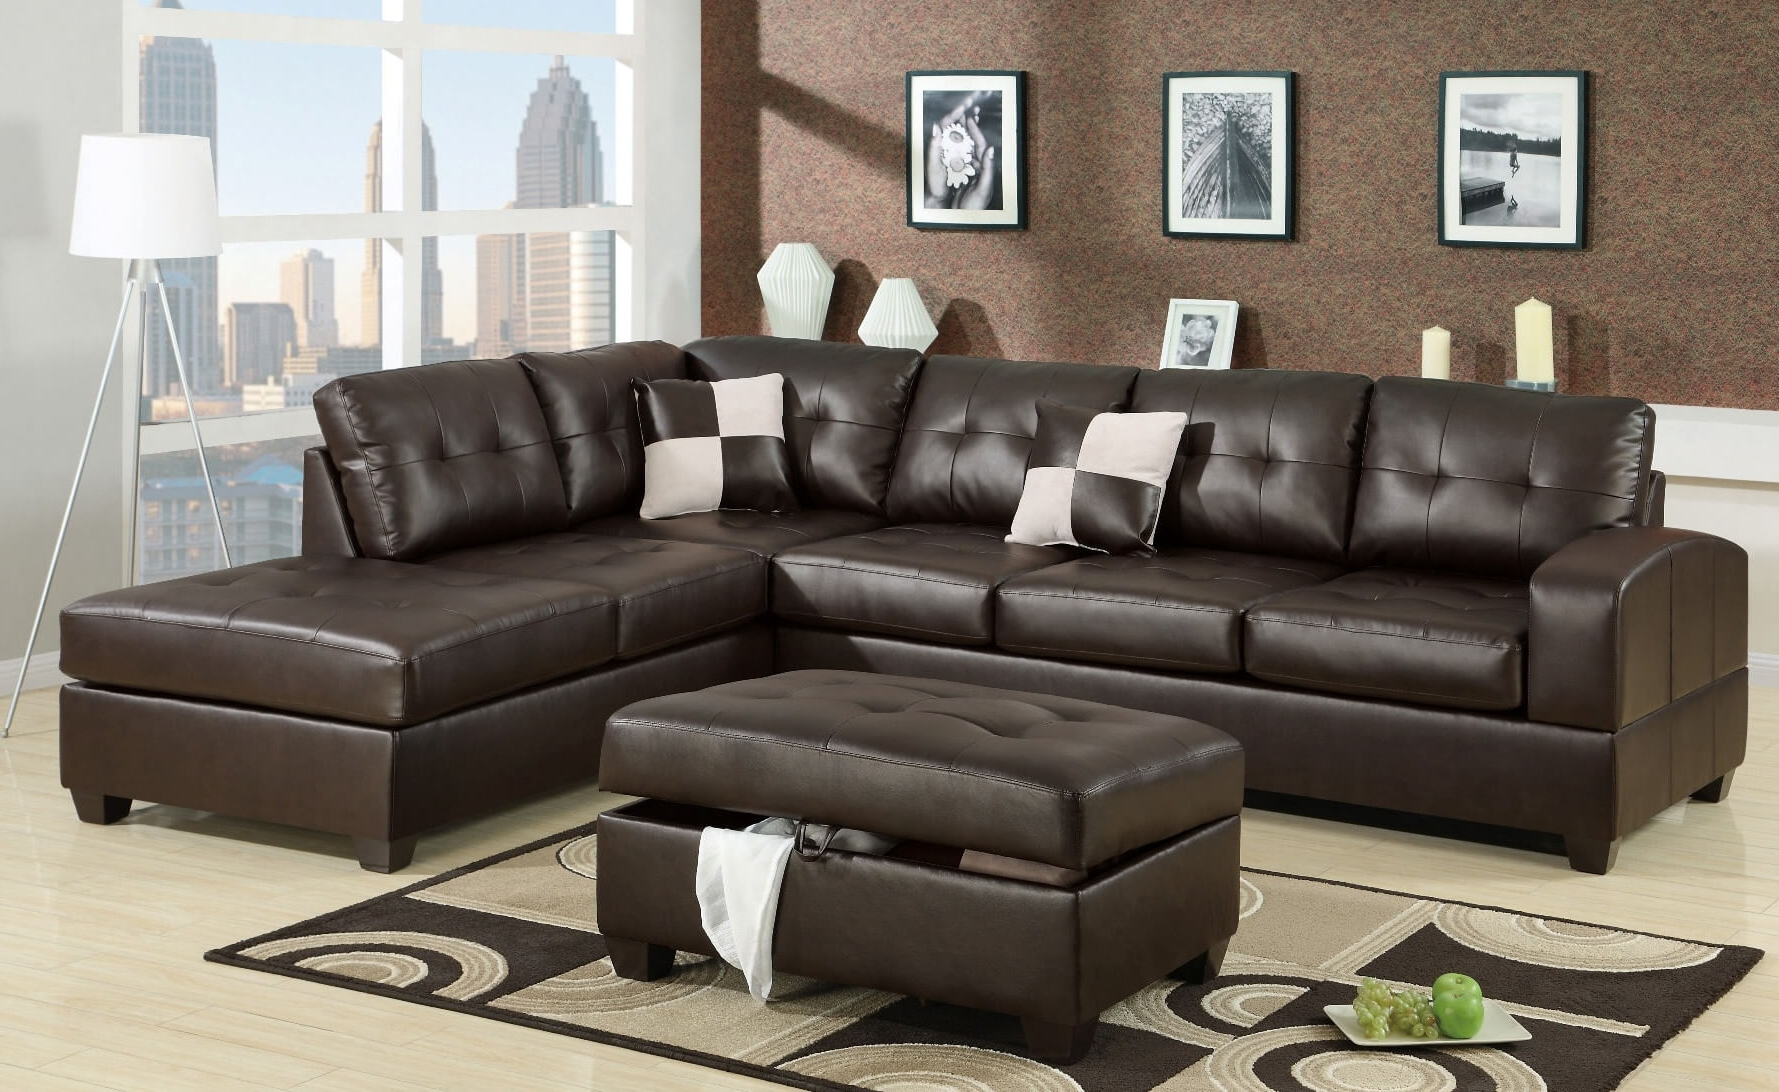 100 Awesome Sectional Sofas Under $1,000 (2018) Inside Latest Sectional Sofas Under  (View 1 of 15)